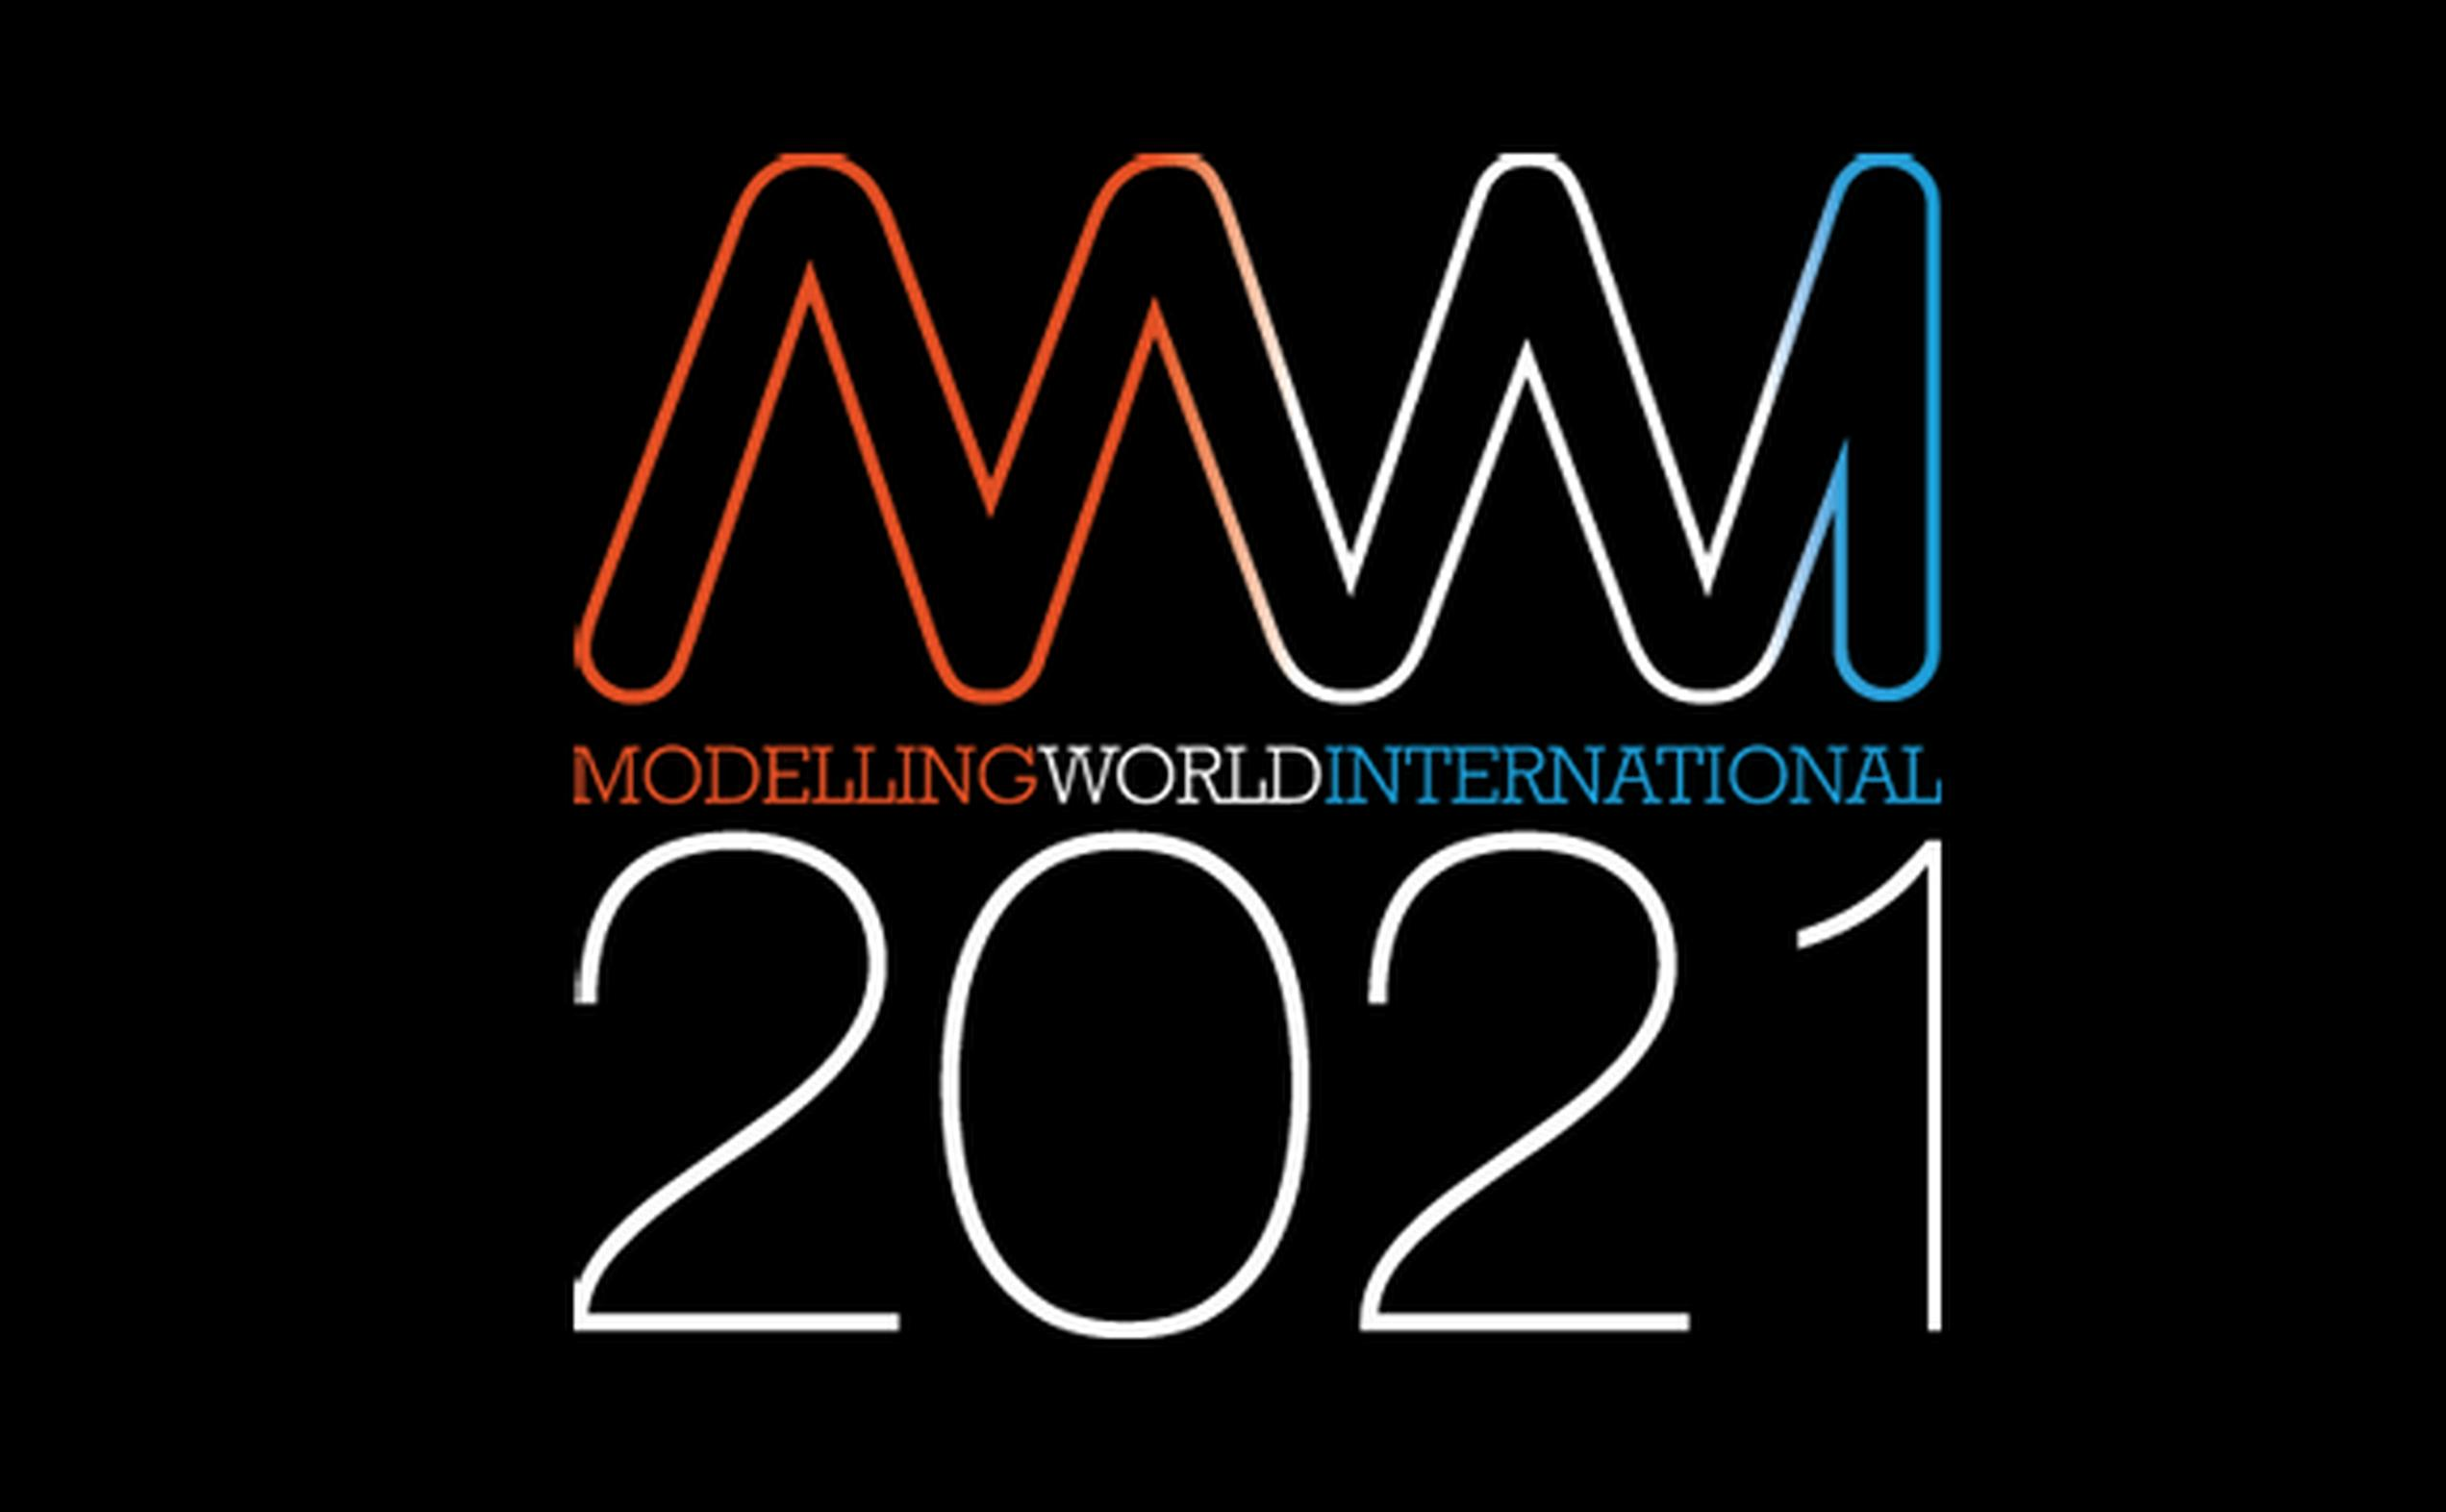 Uncertainty and innovation emerge as key issues at first Modelling World International